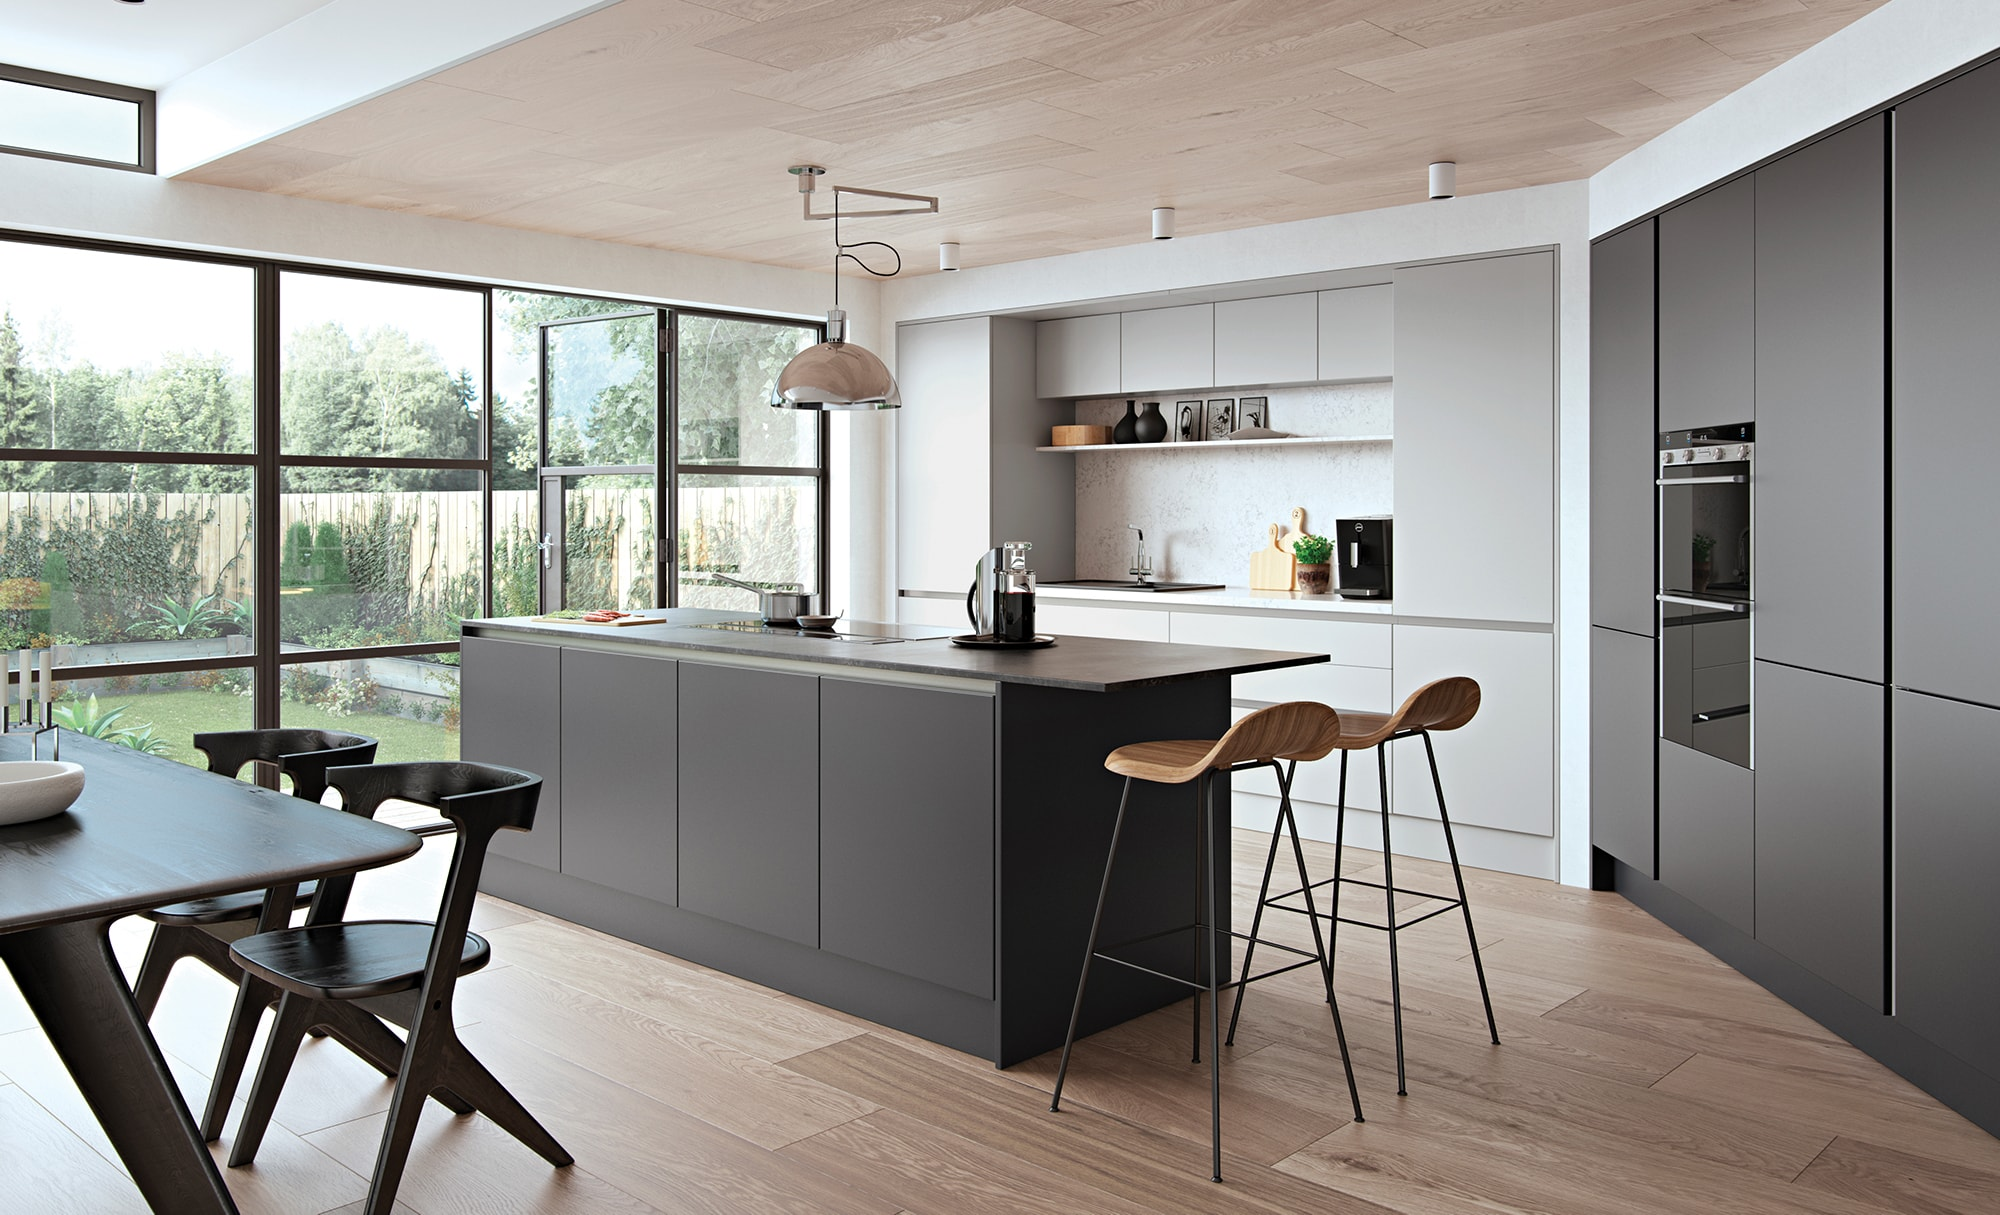 Zola Handleless Light Grey & Graphite, Zola matte is an 18mm MDF slab door finished in super matte PET lacquered laminate.